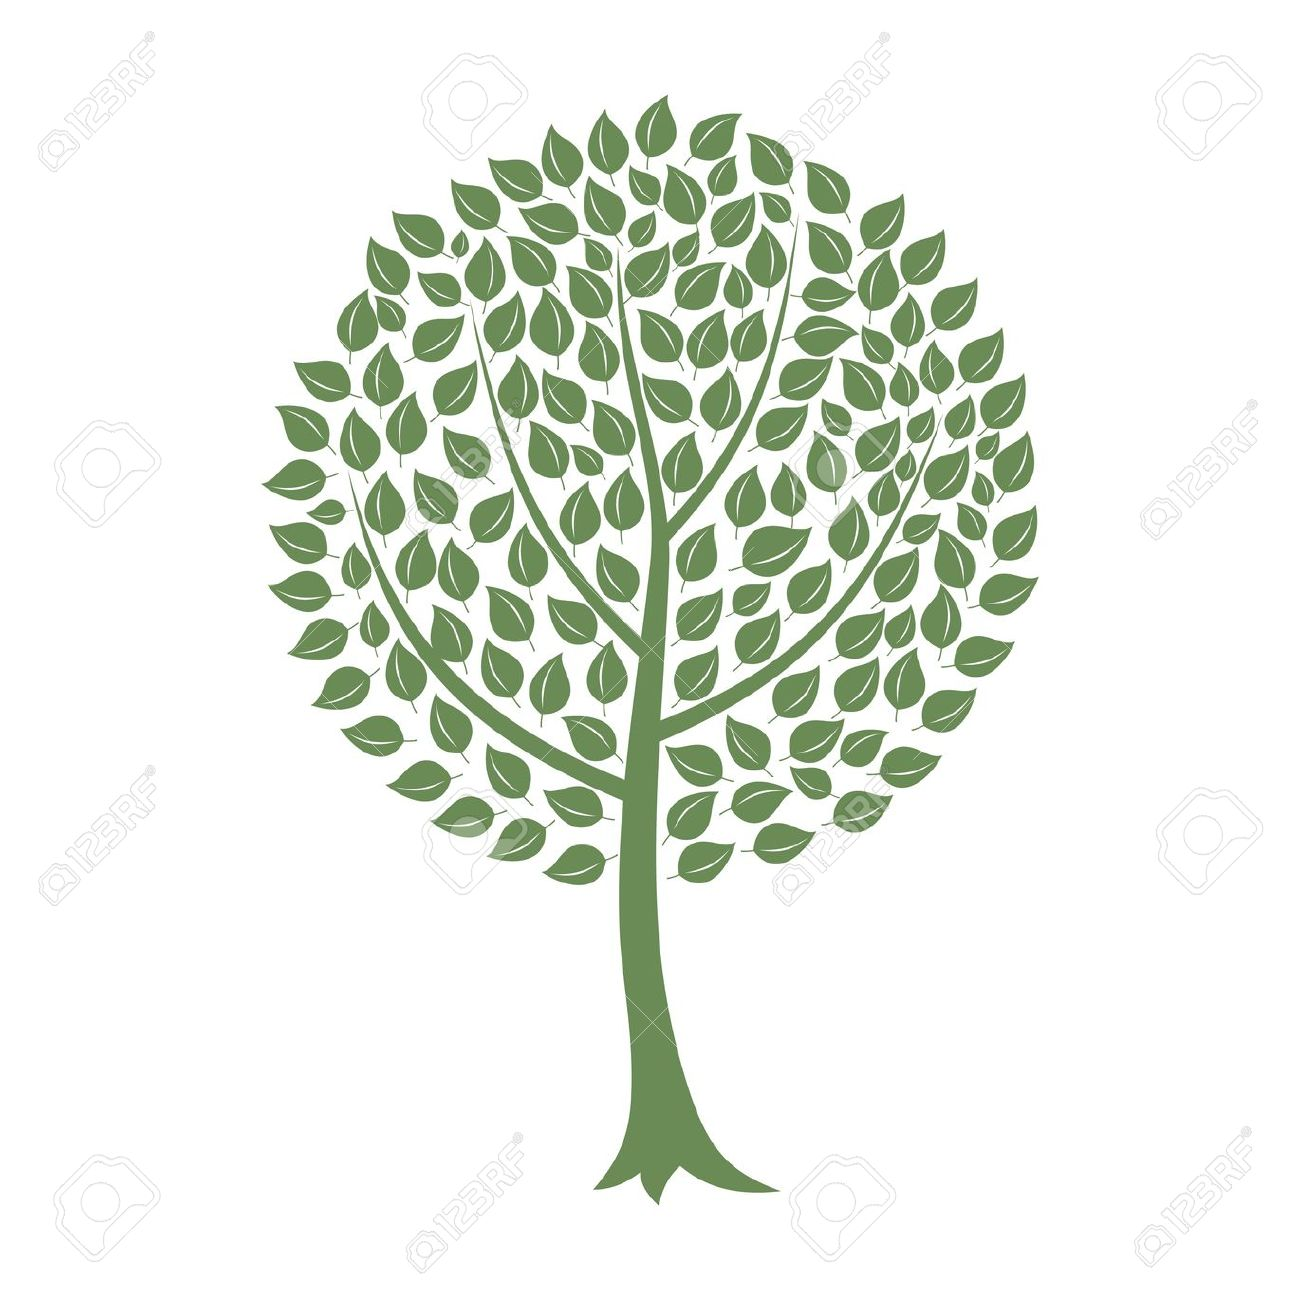 Aspen trees clipart - Clipground